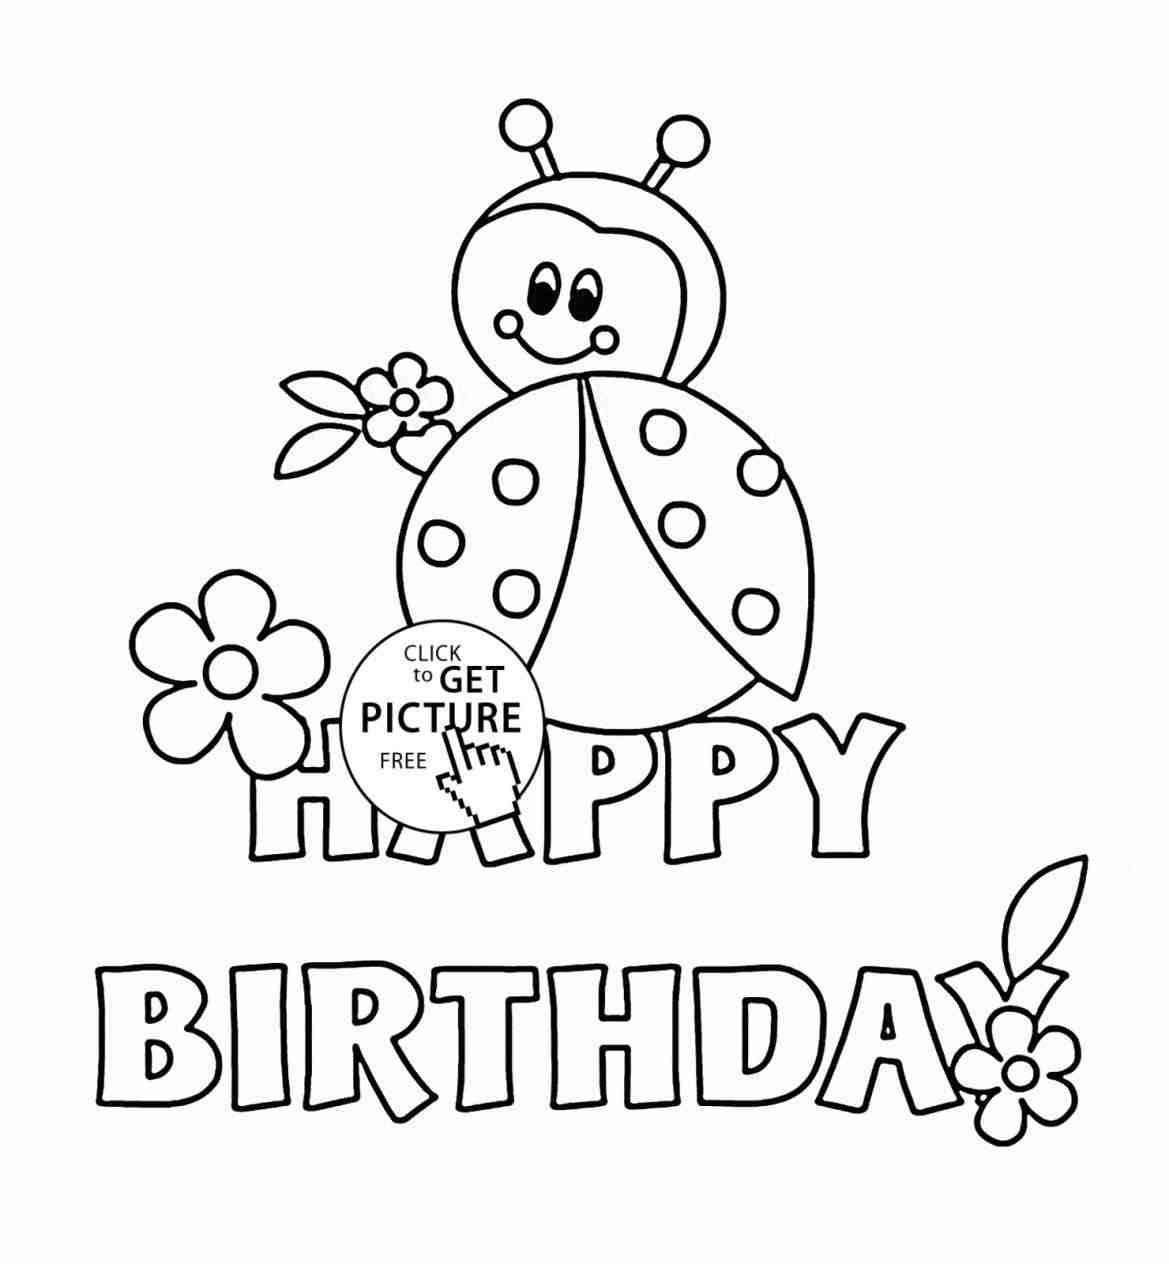 ladybug birthday card template ; page-for-kids-holiday-happy-Ladybug-Craft-Template-birthday-card-with-ladybug-coloring-page-for-kids-holiday-rhpinterestcom-best-photos-of-craft